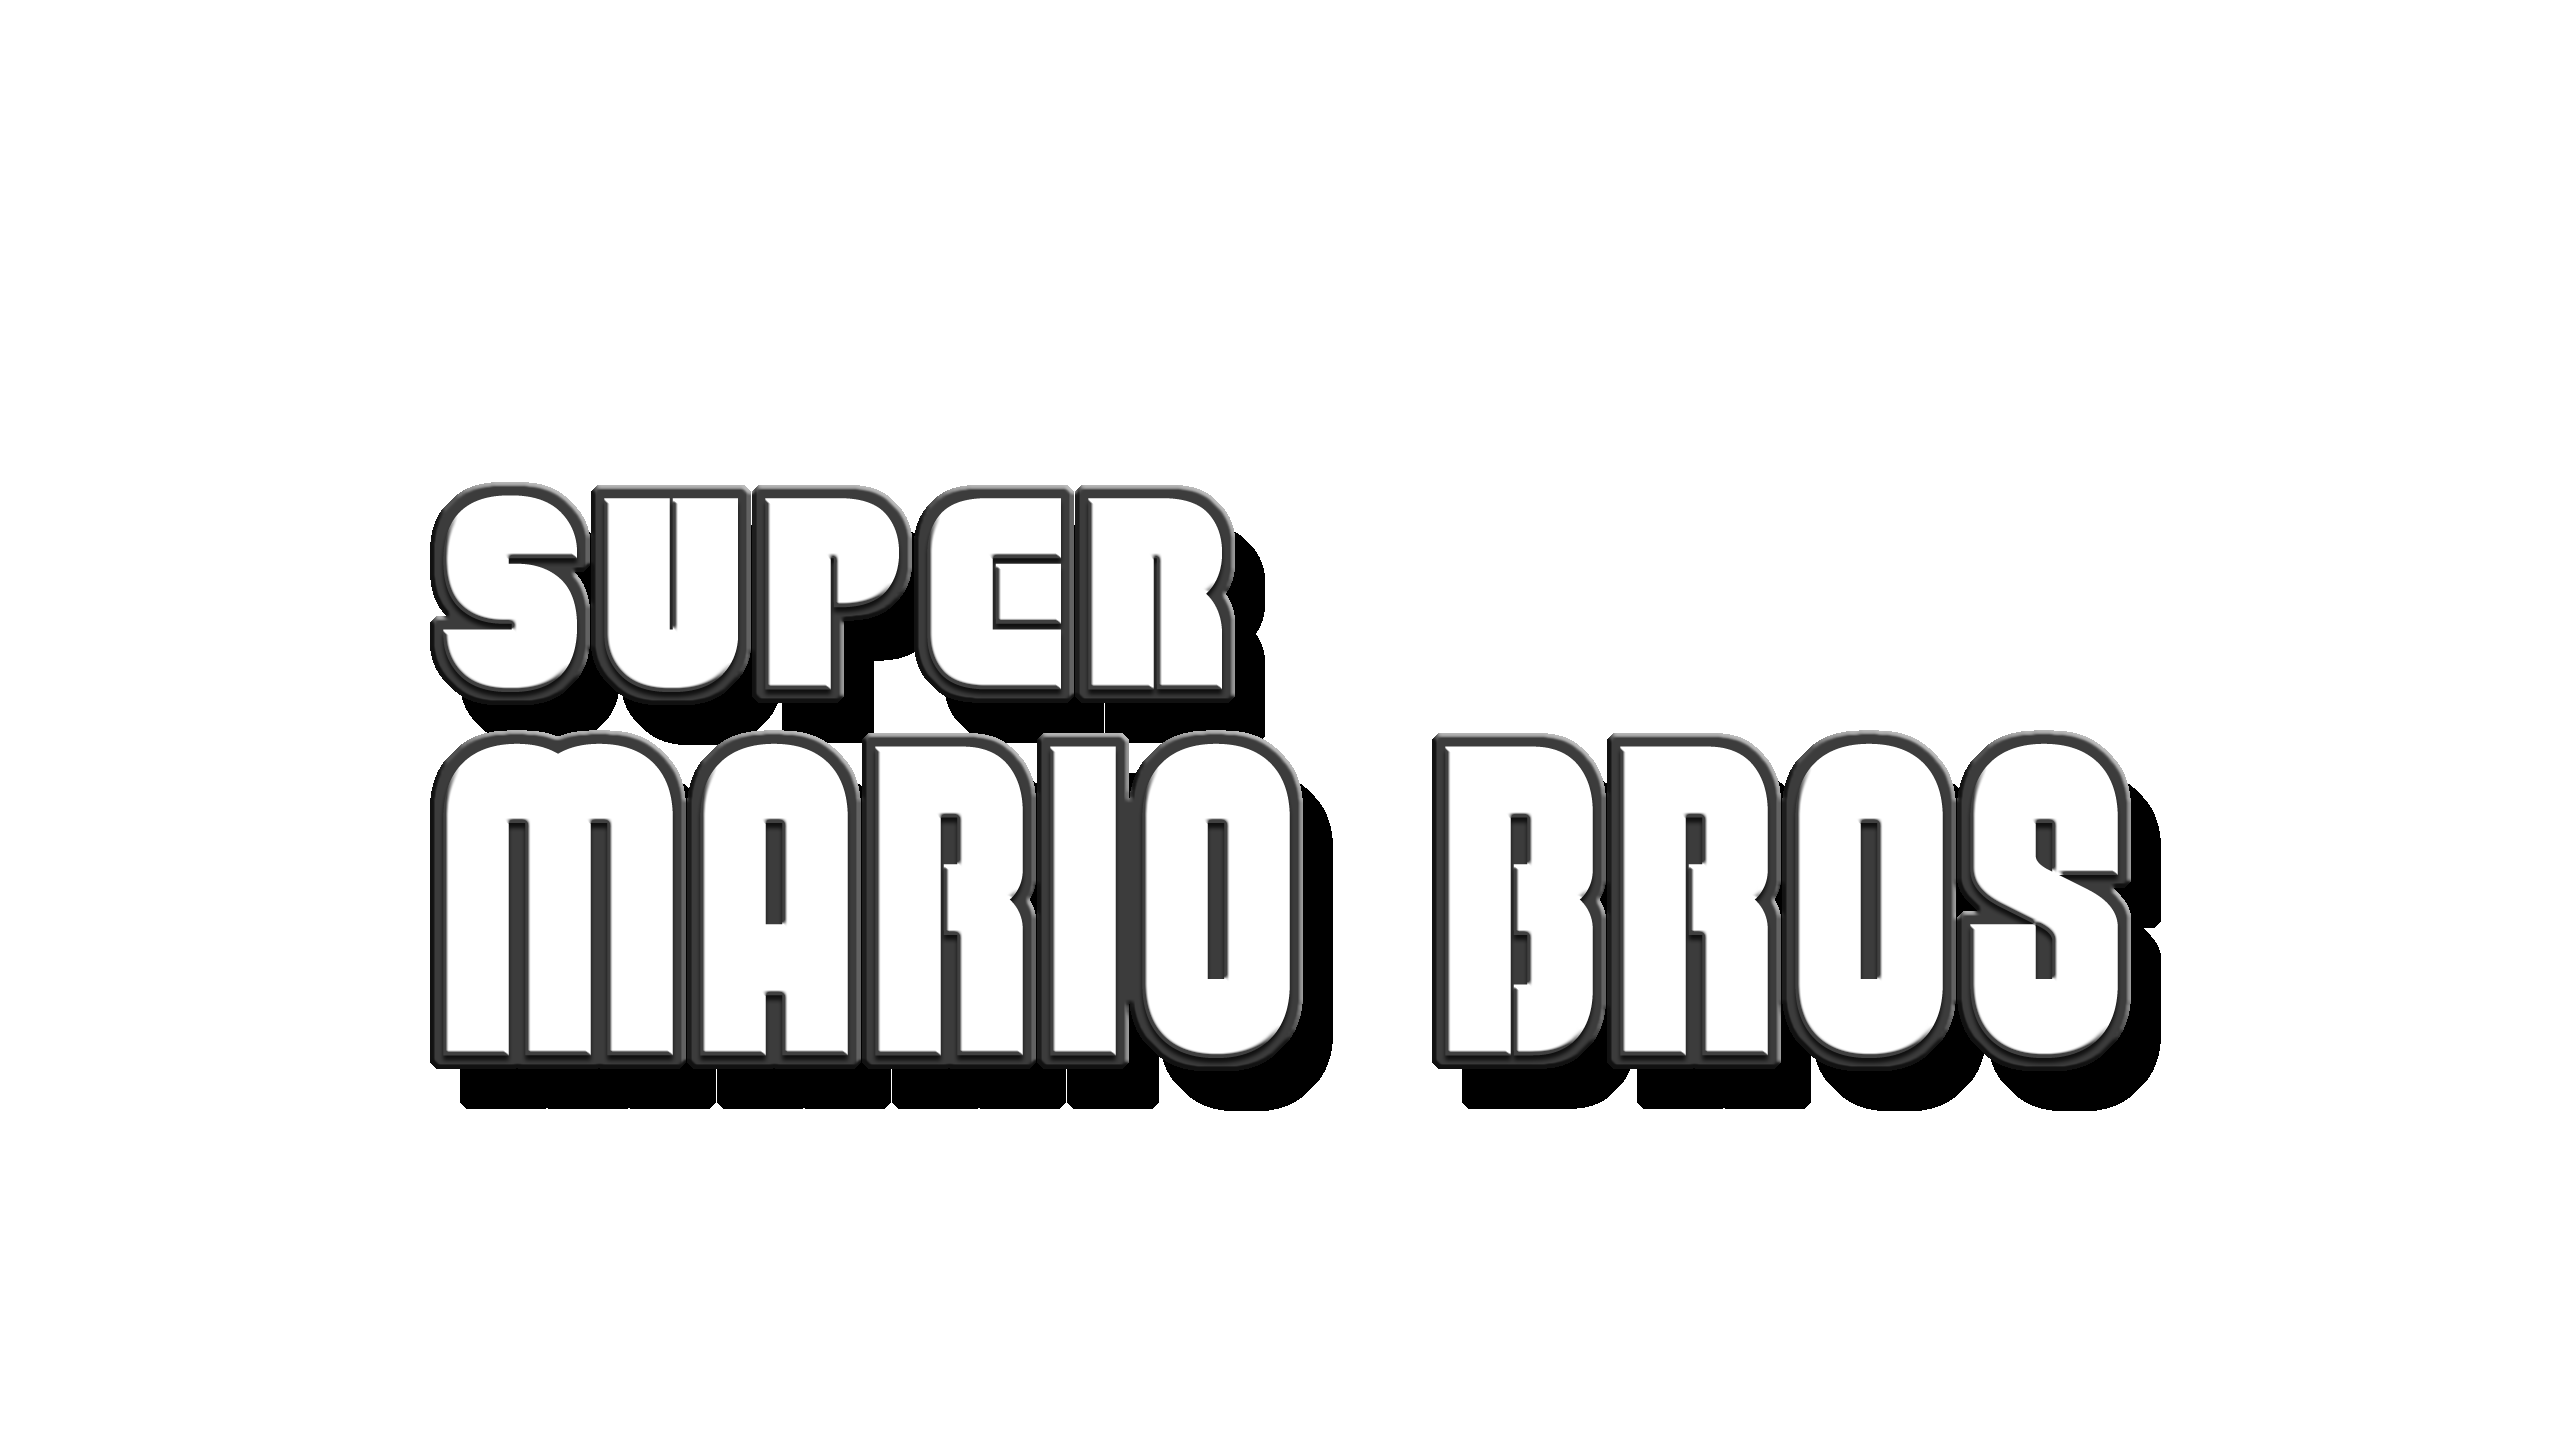 Hd Super Mario Bros Logo By Turret3471 On Deviantart